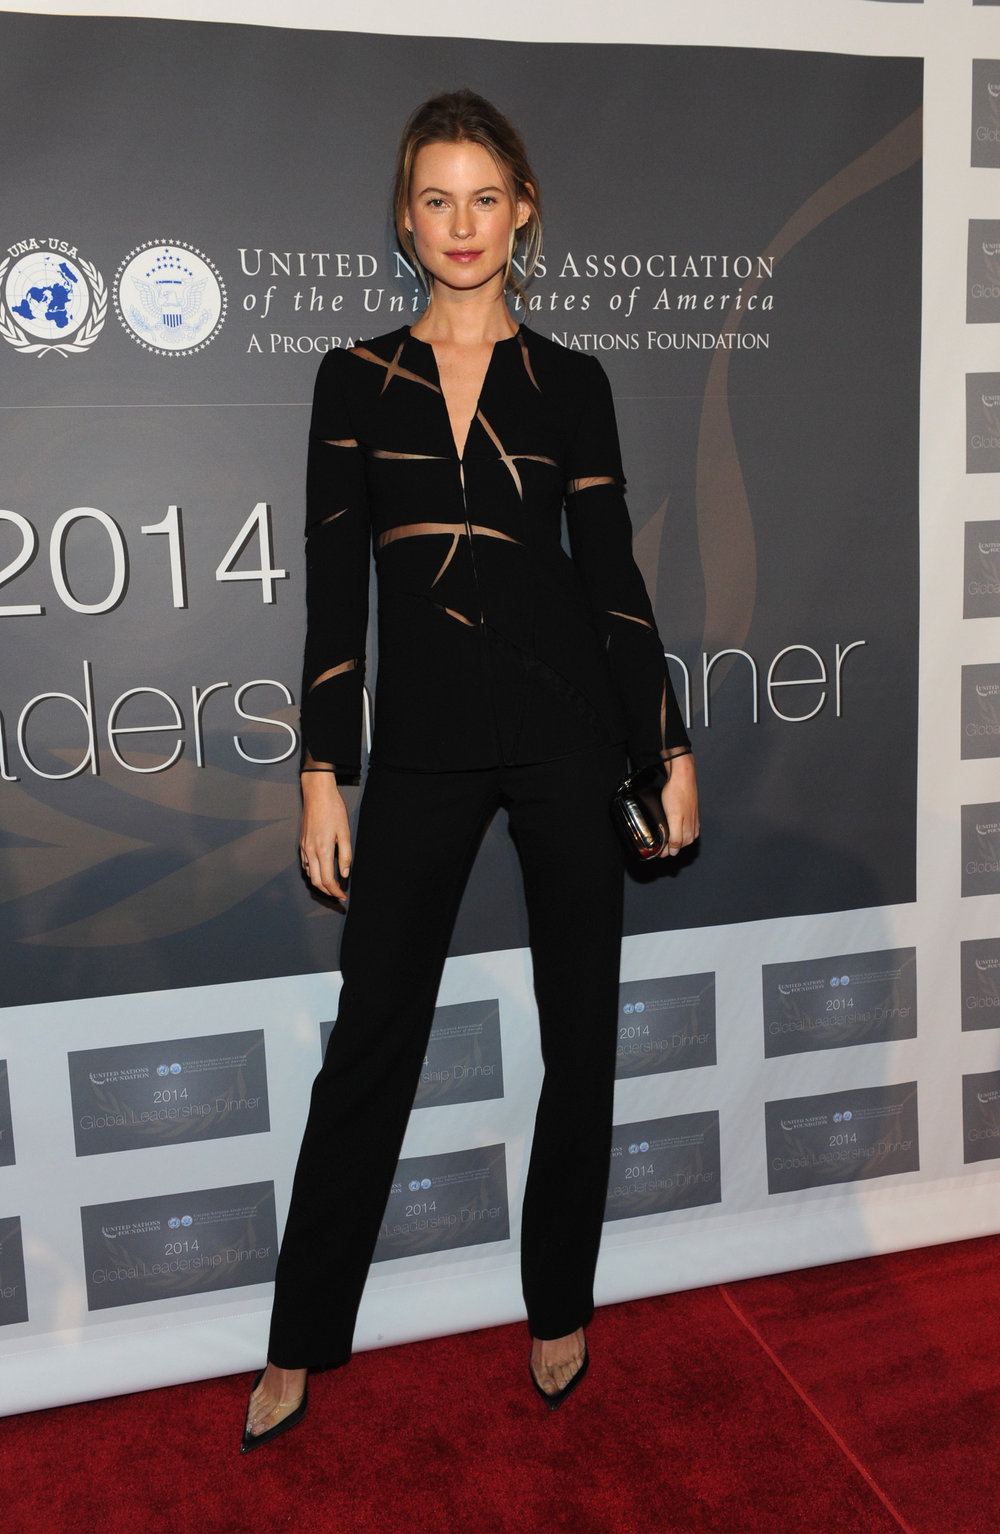 Behati Prinsloo at UN Foundation Global Leadership Awards Dinner